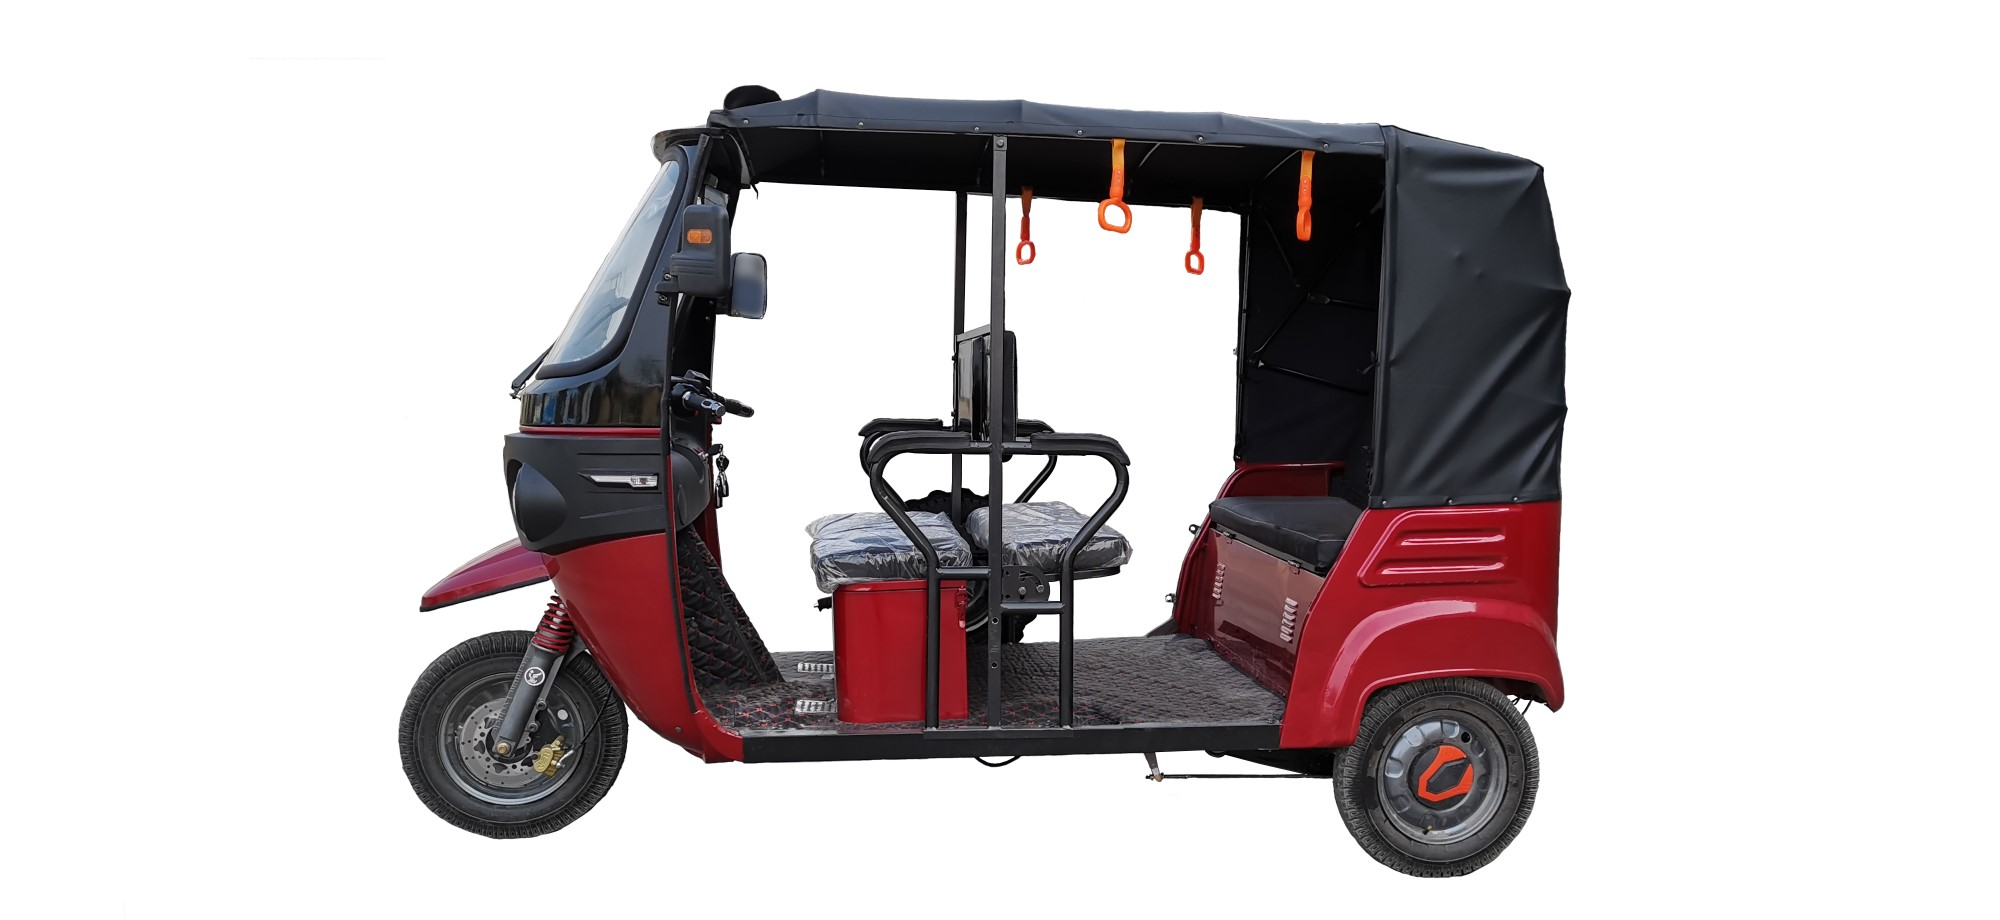 High quality 2020 Lasted design Electric Tuk tuk for 6-7 passengers Quotes,China 2020 Lasted design Electric Tuk tuk for 6-7 passengers Factory,2020 Lasted design Electric Tuk tuk for 6-7 passengers Purchasing